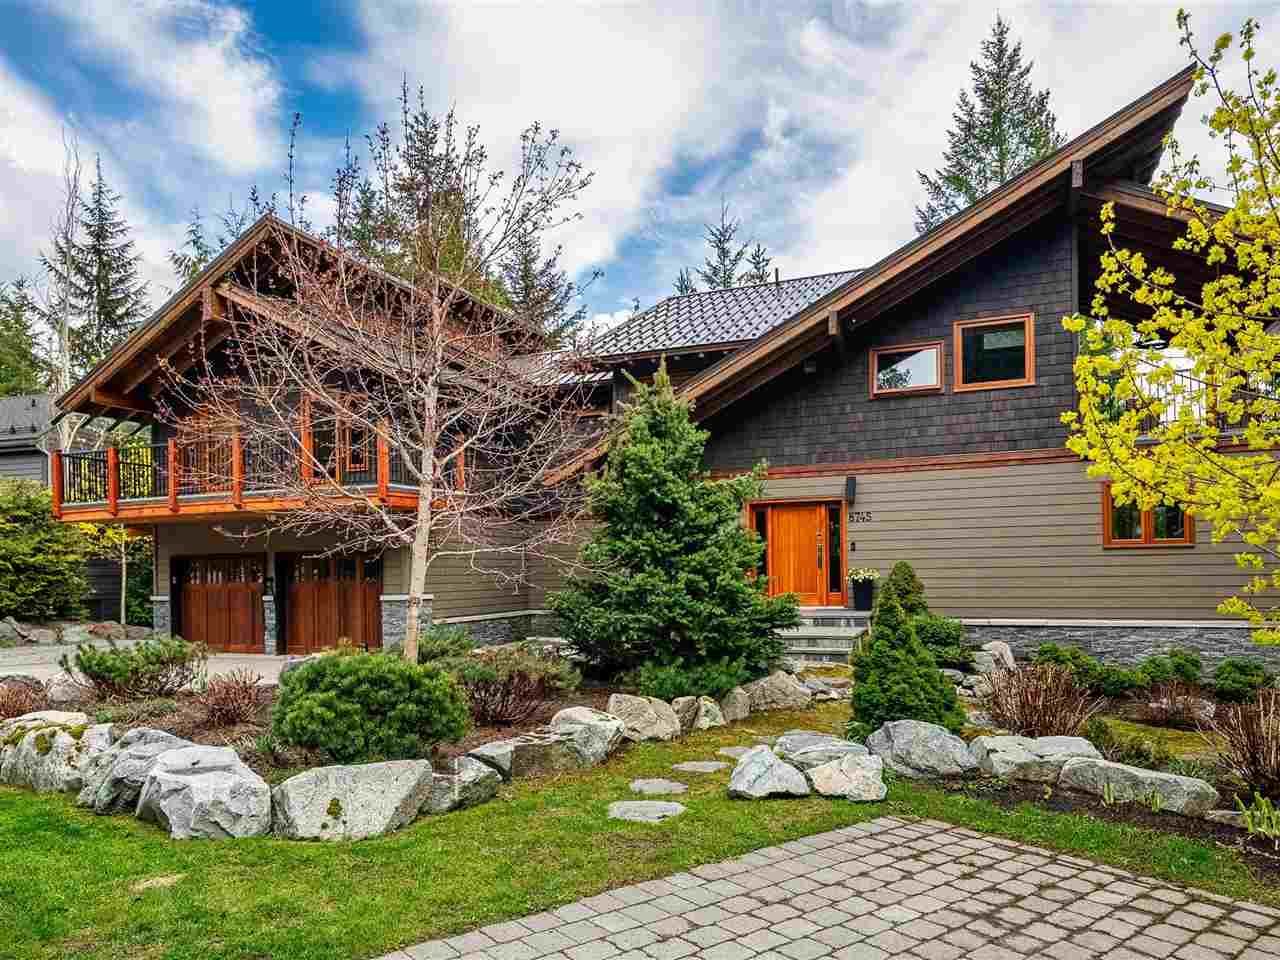 8745 IDYLWOOD PLACE - Alpine Meadows House/Single Family for sale, 7 Bedrooms (R2578936) - #2